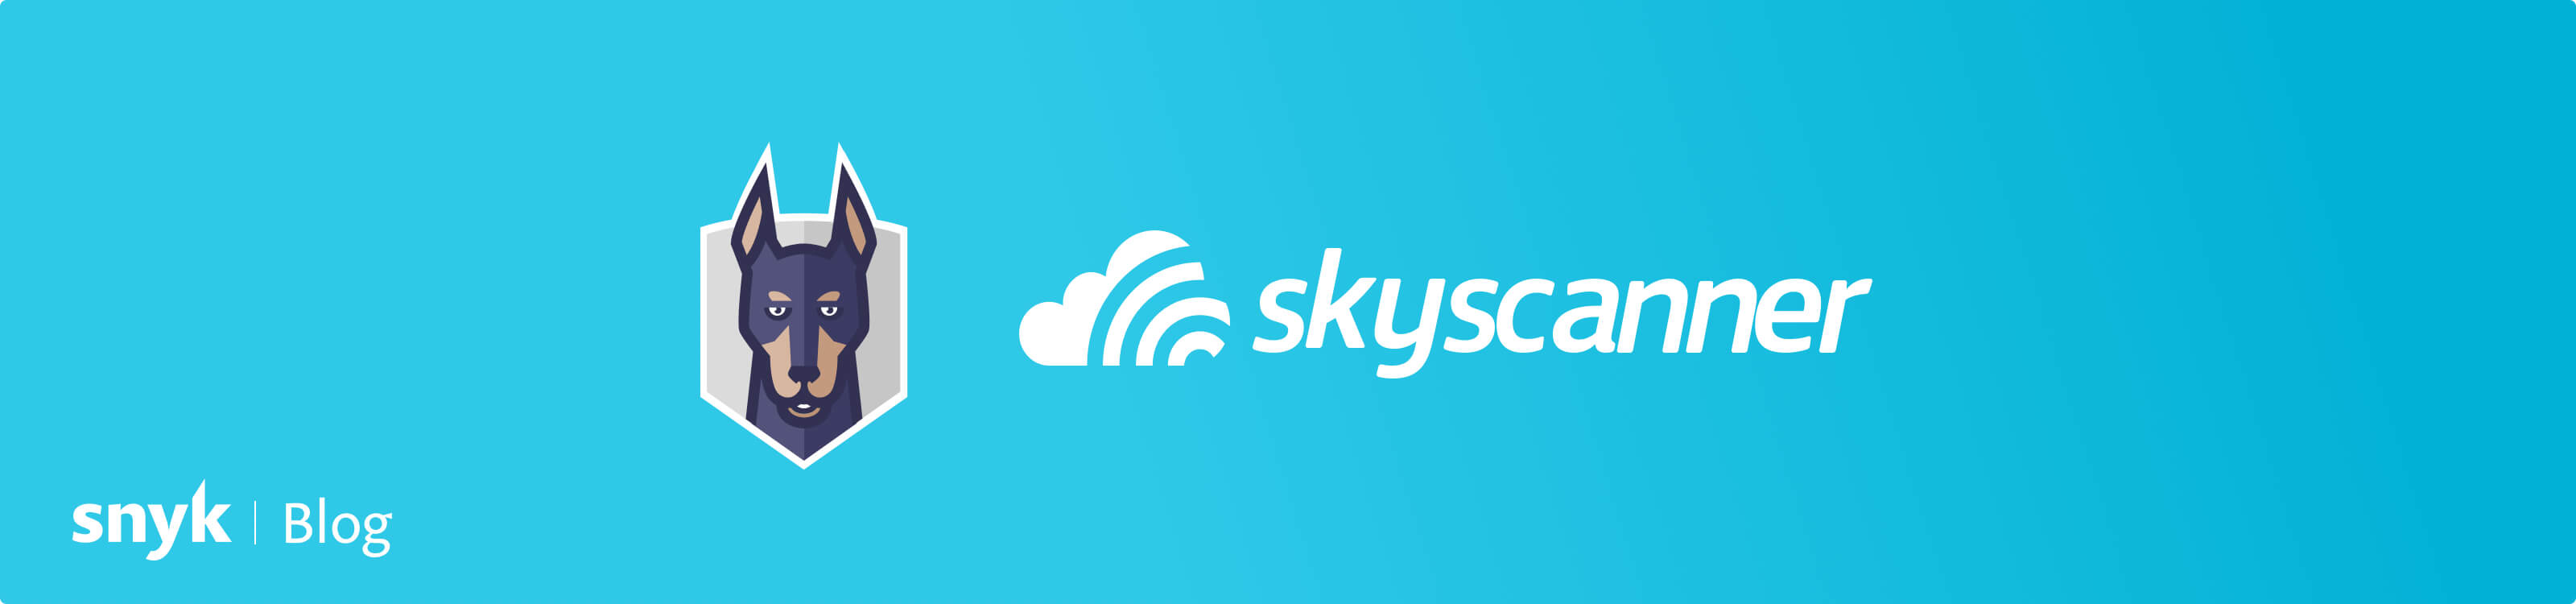 Skyscanner fixed projects and gained visibility into their open source vulnerability exposure.